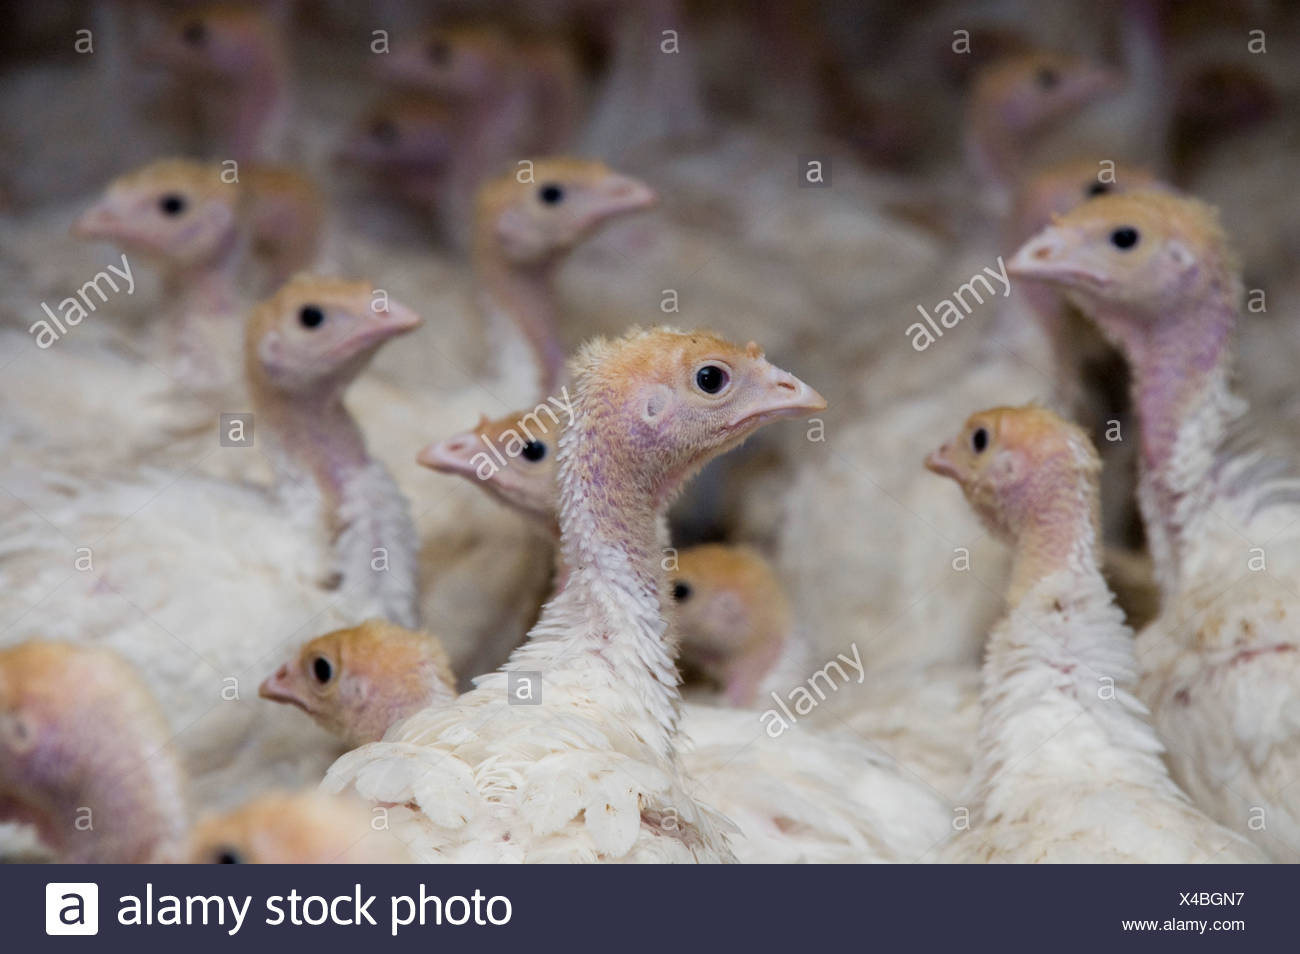 24 day old turkey hatchlings in a breeding coop.  - Stock Image